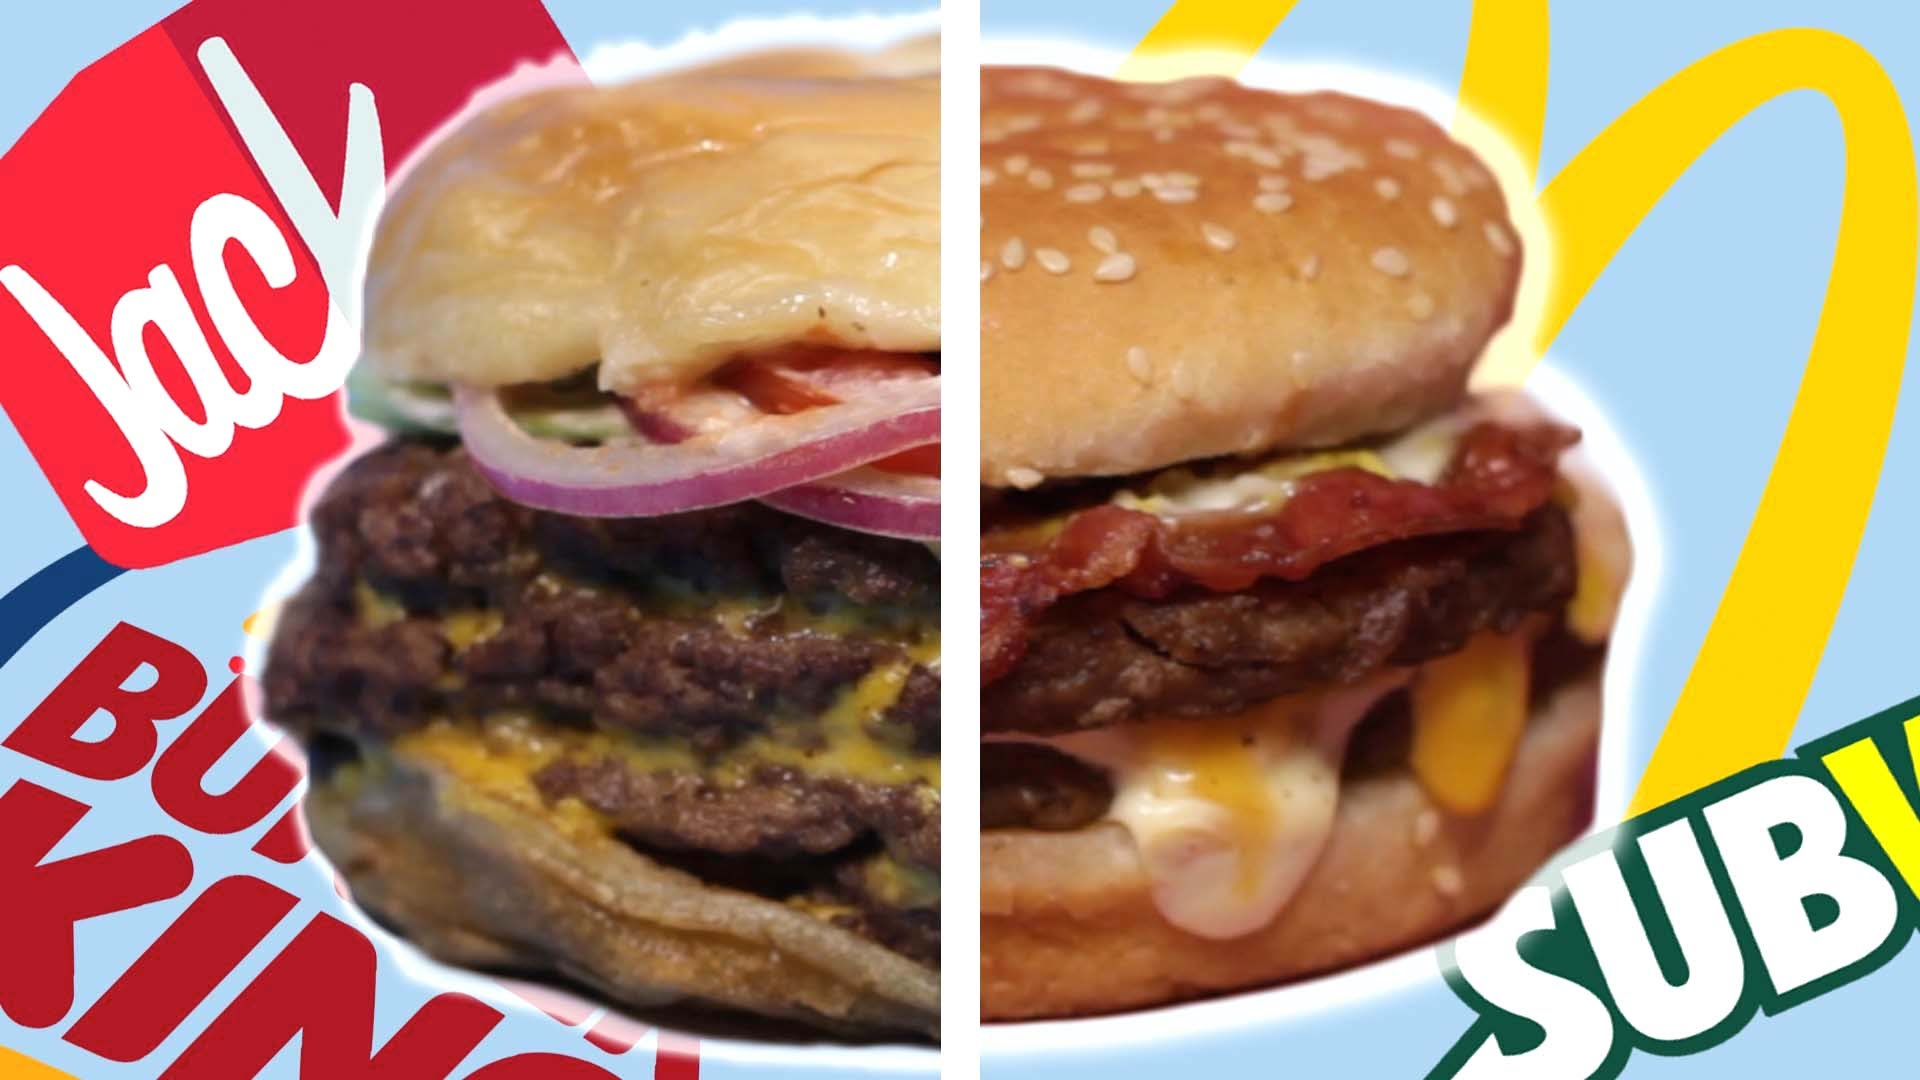 Can You Guess Which Product Has More Calories?